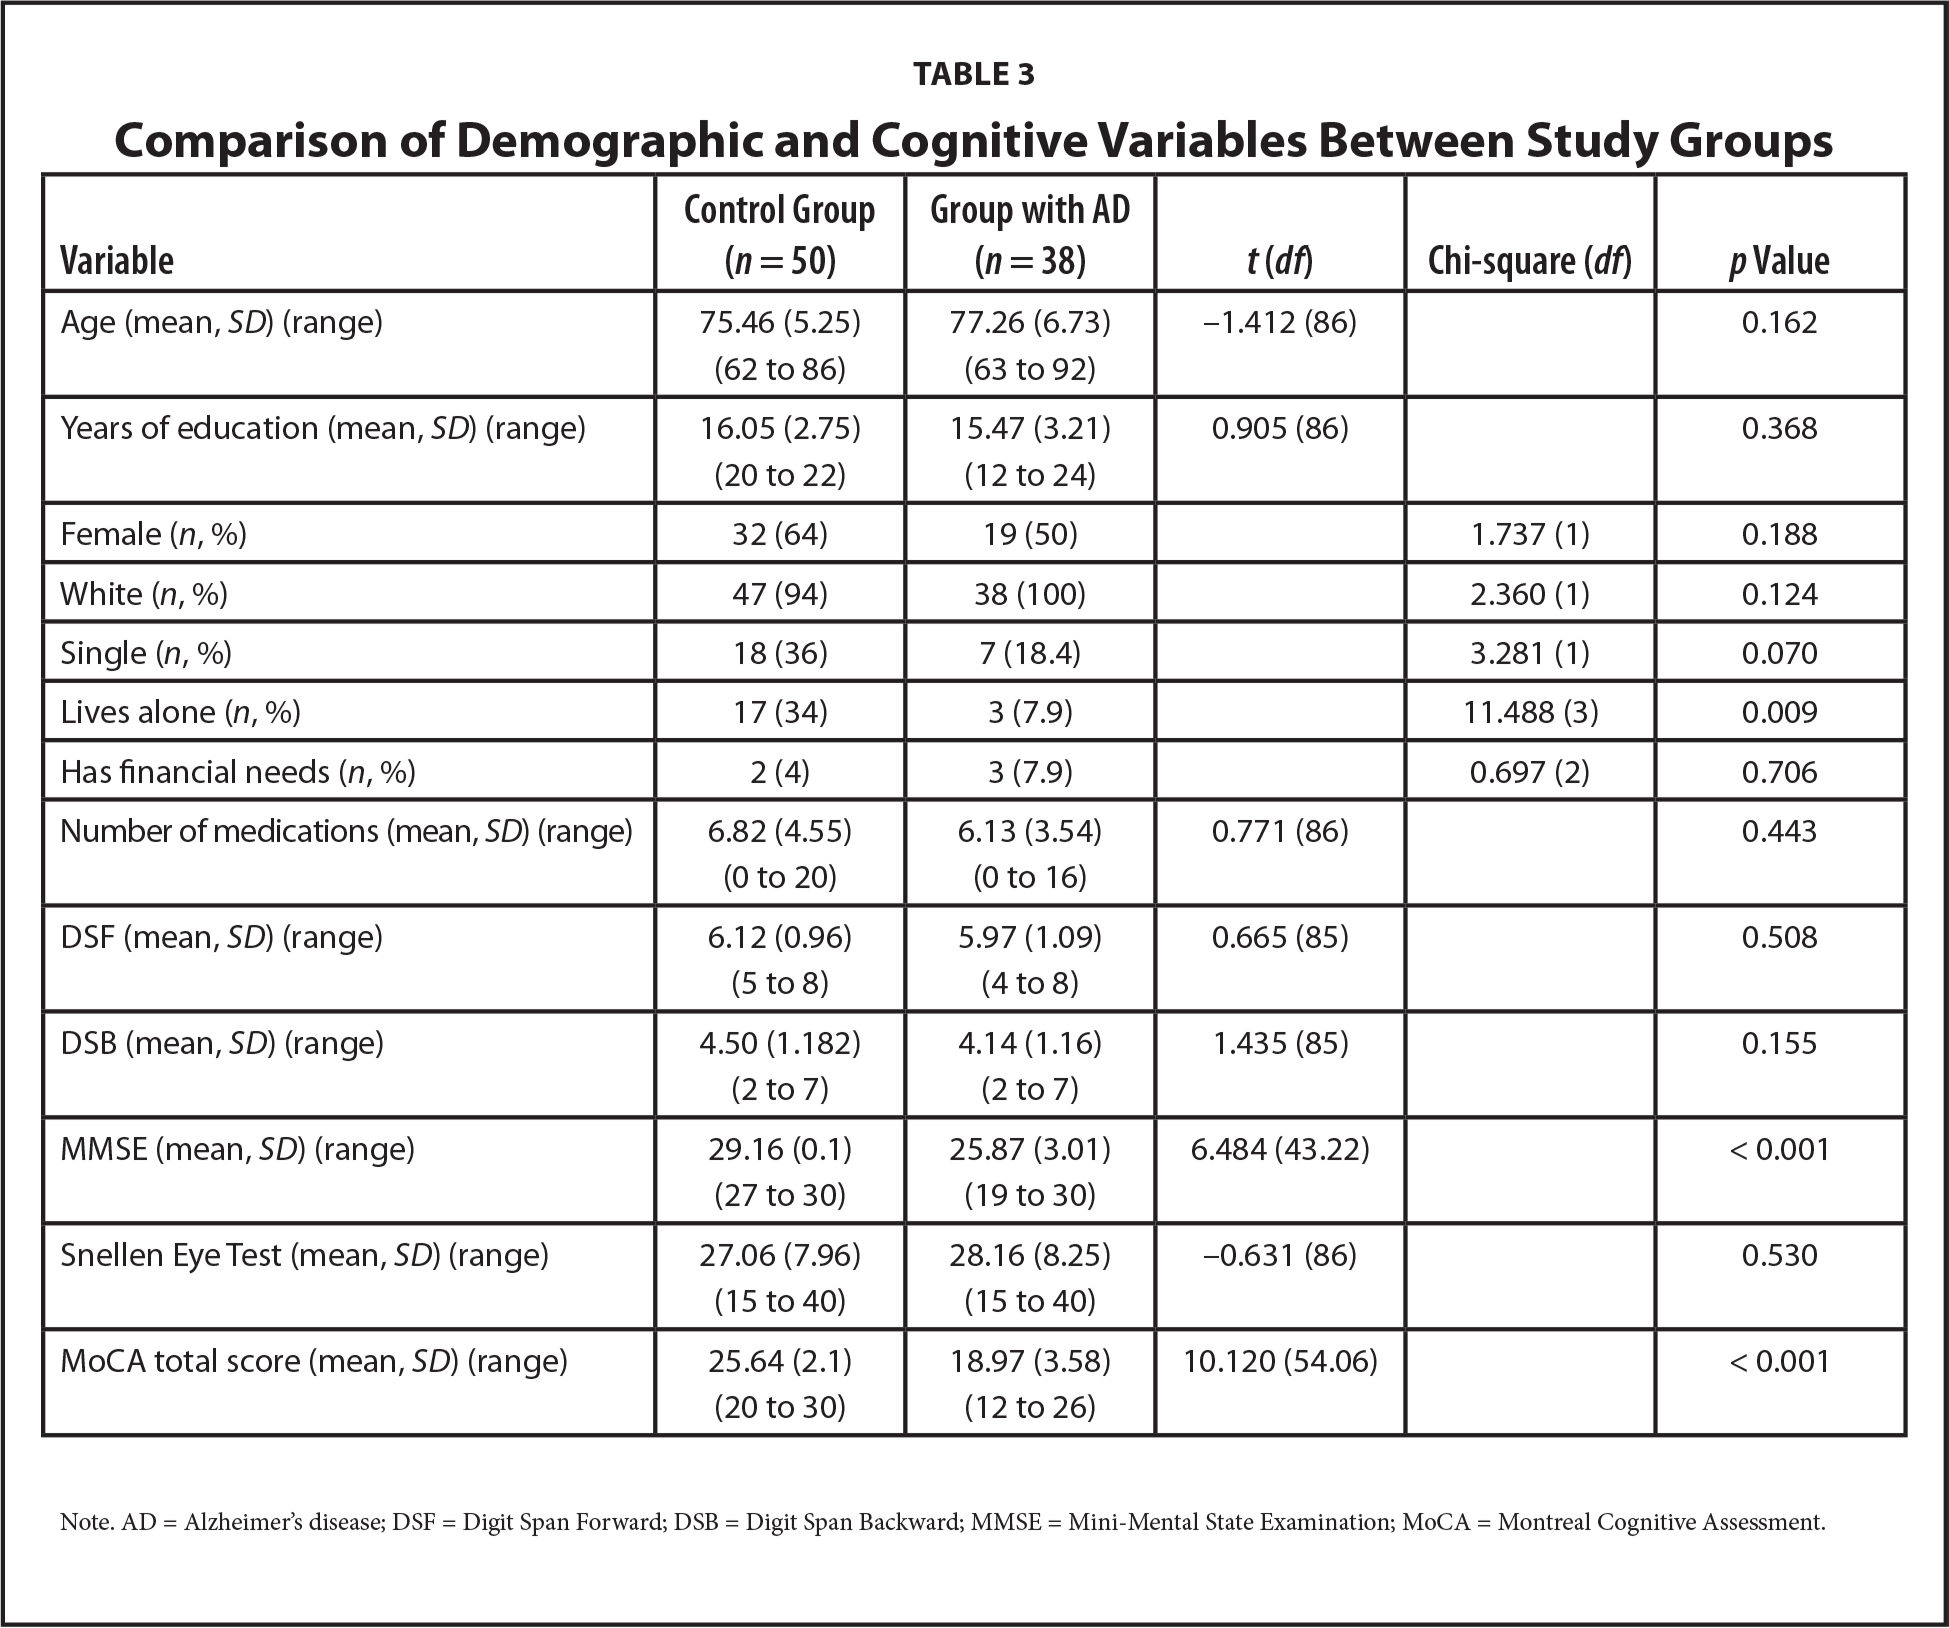 Comparison of Demographic and Cognitive Variables Between Study Groups